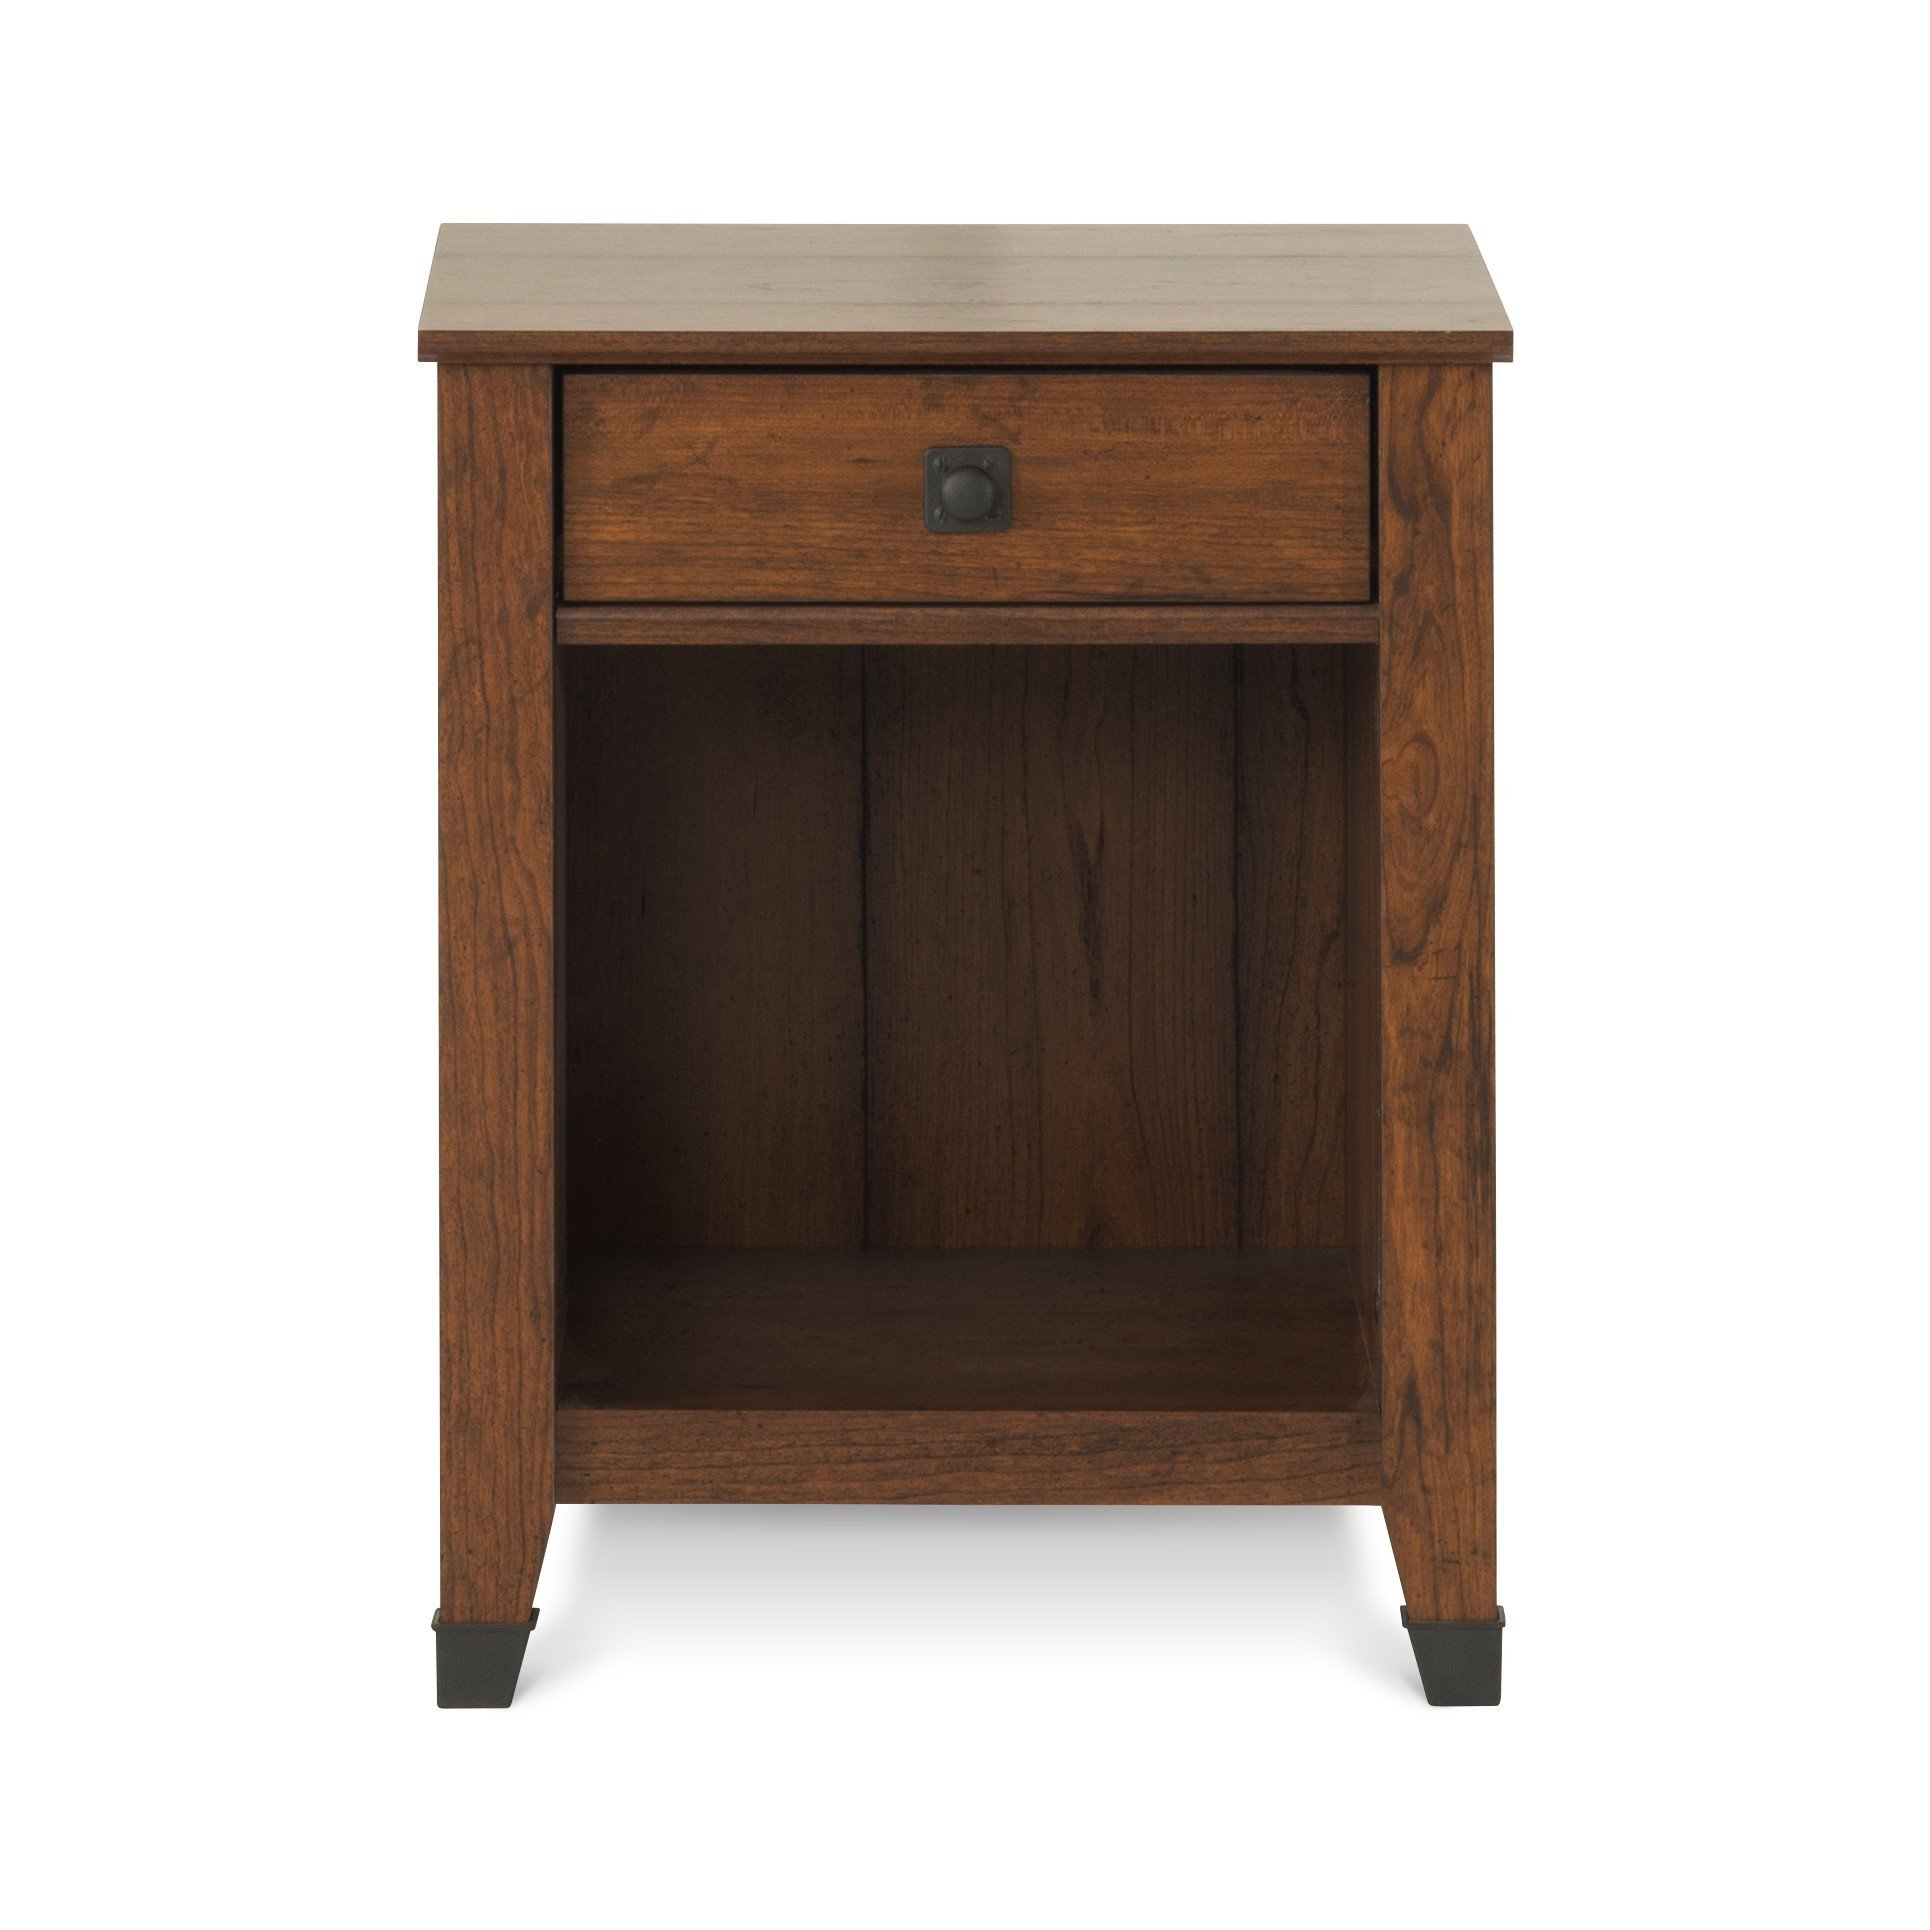 Redmond 1 Drawer Coach Cherry Finish Nightstand with Open Shelf for Additional Storage